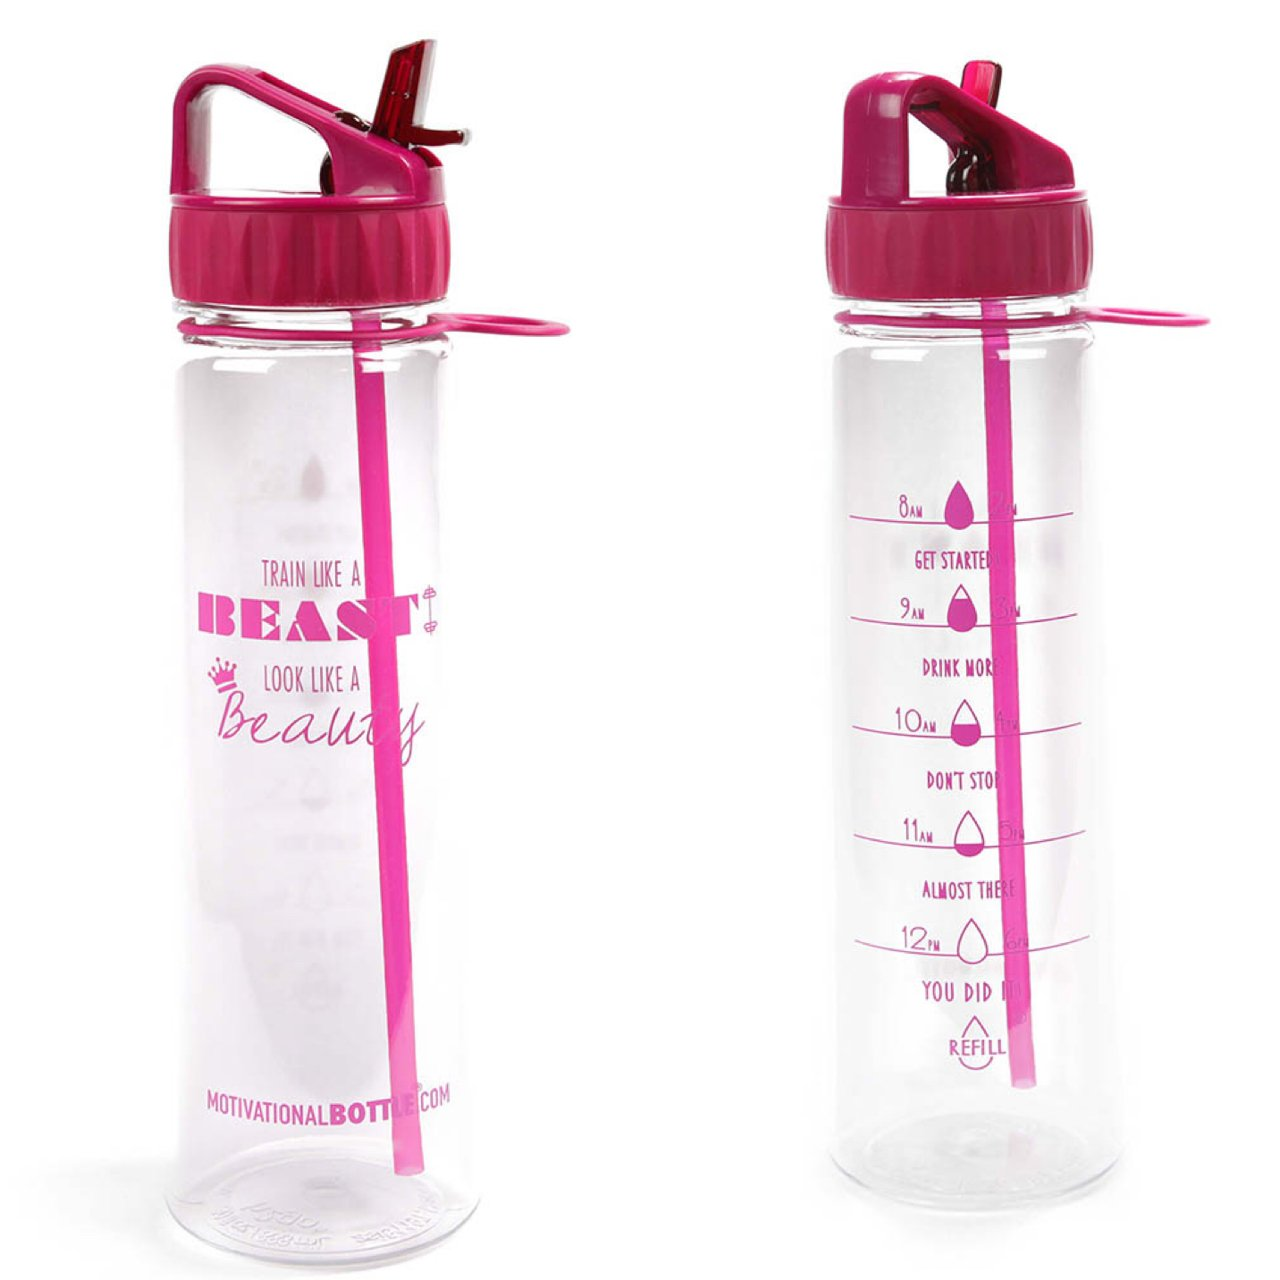 Motivational Bottle 30oz Fitness Workout Sports Water Bottle with Unique Timeline | Measurements | Goal Marked Times for Measuring Your Daily Water Intake BPA Free Non Toxic Tritan